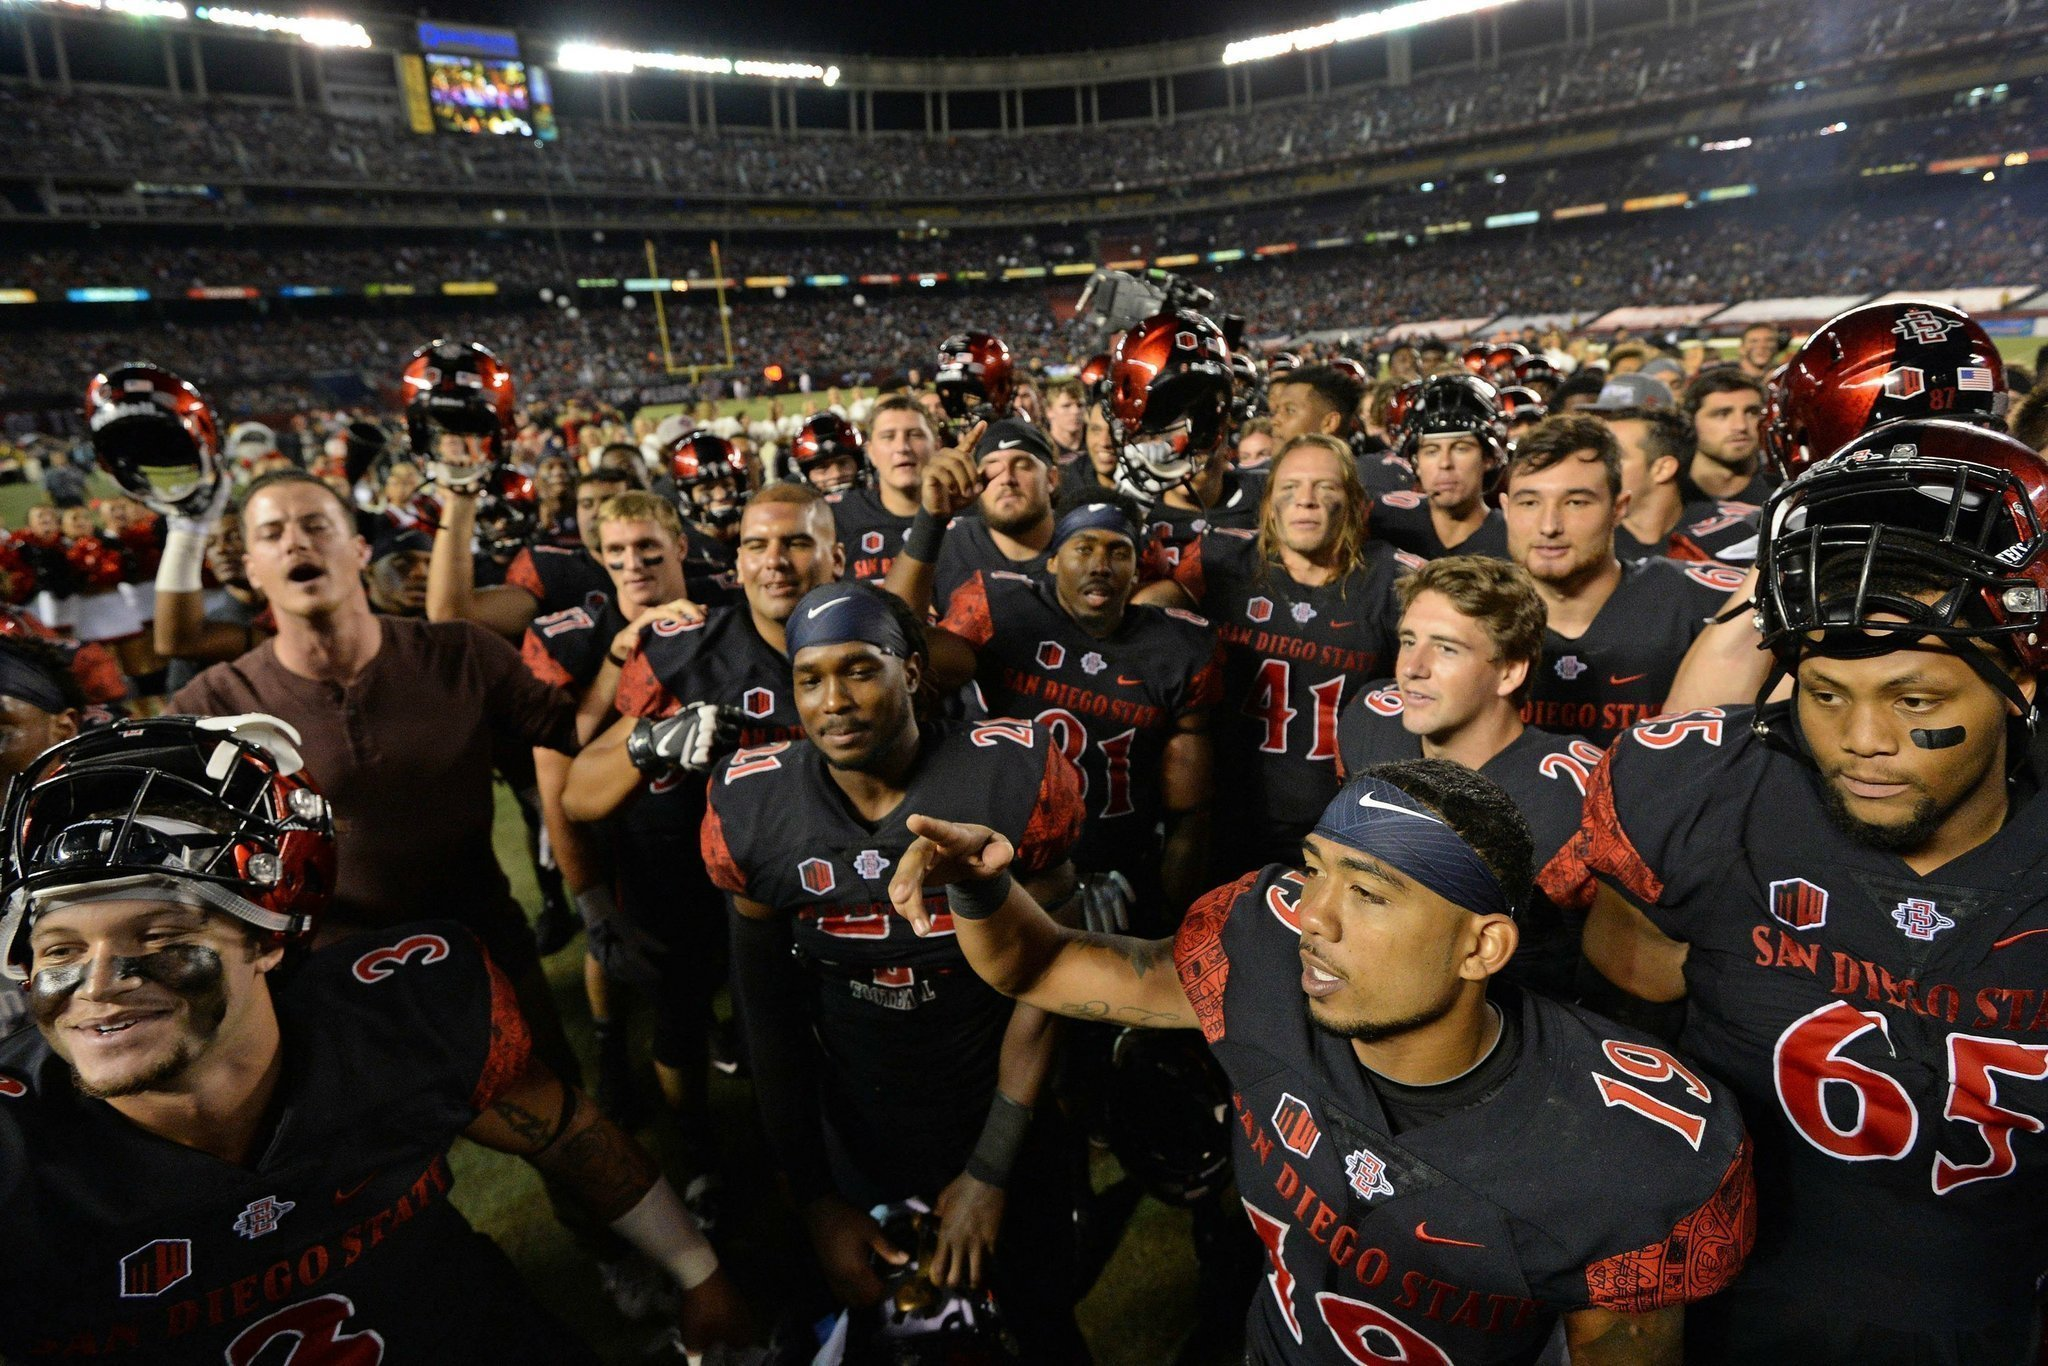 Sdut-zeigler-sdsu-football-power-5-cal-2016sep09